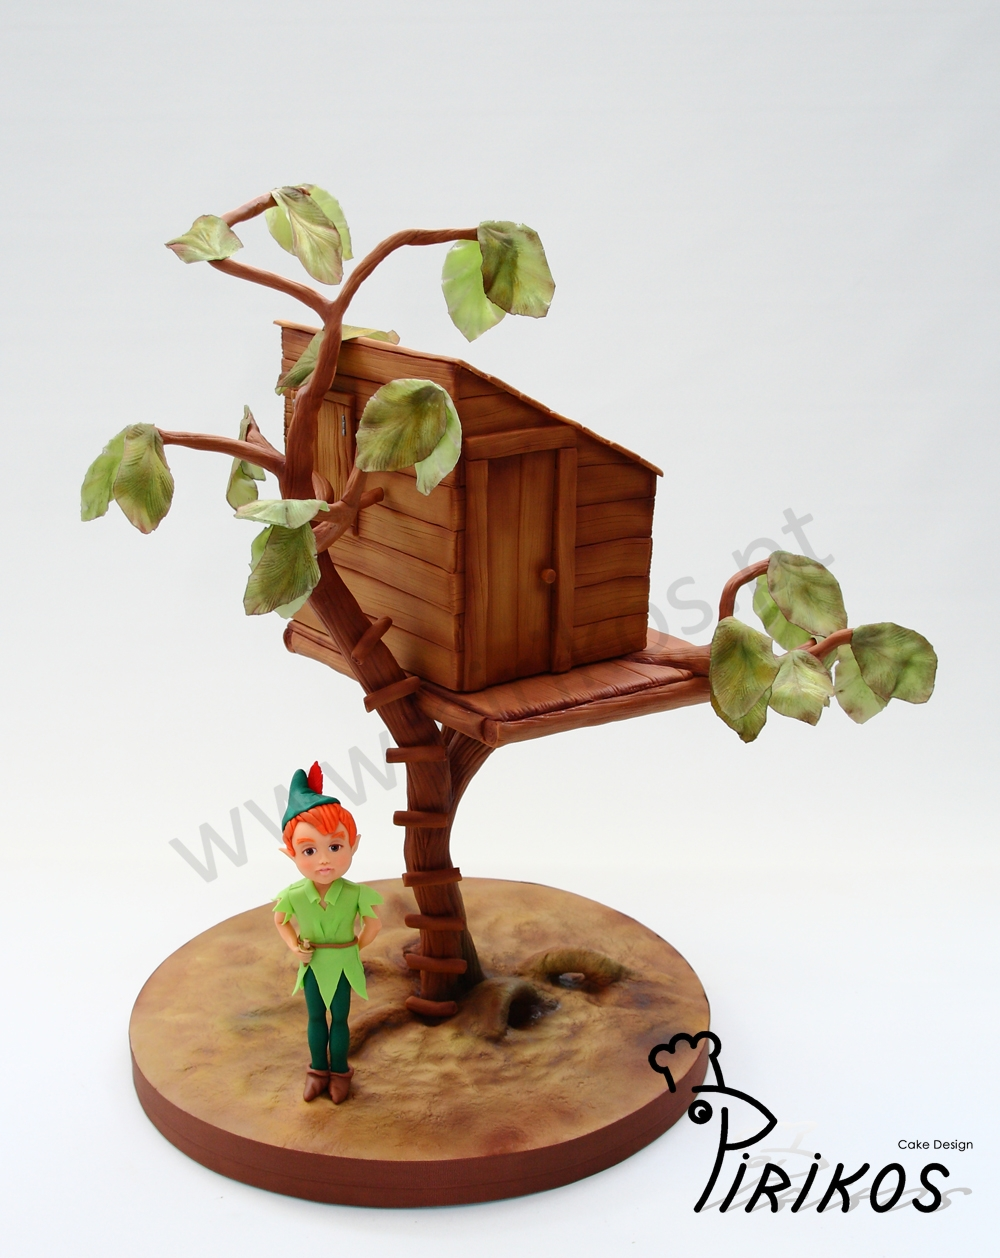 Peter Pan's Tree House Peter Pan as Made a tree house for his friend, the birthday boy!A Cake for 30 at 30 cm from the base on a tree.